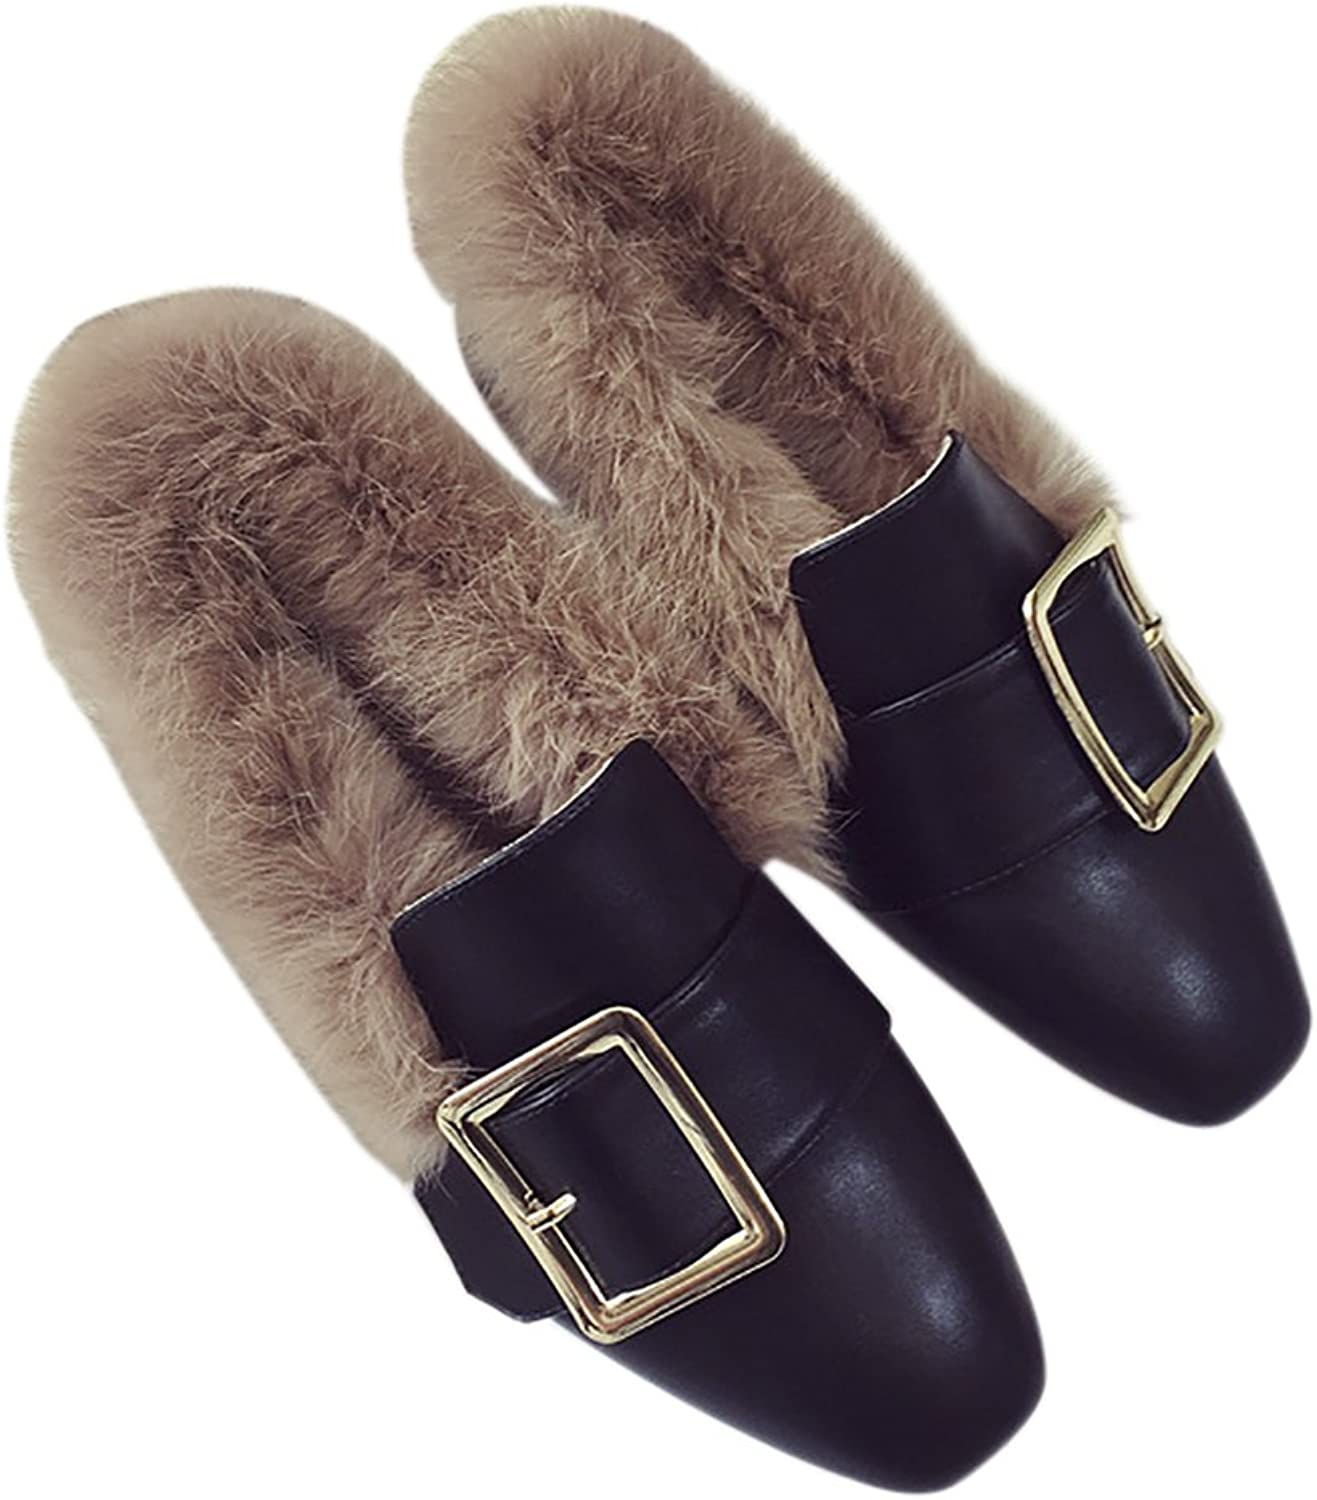 QZUnique Women Elegant Moccasin Slippers Cony Hair Linings PU Surface Flat Loafers shoes